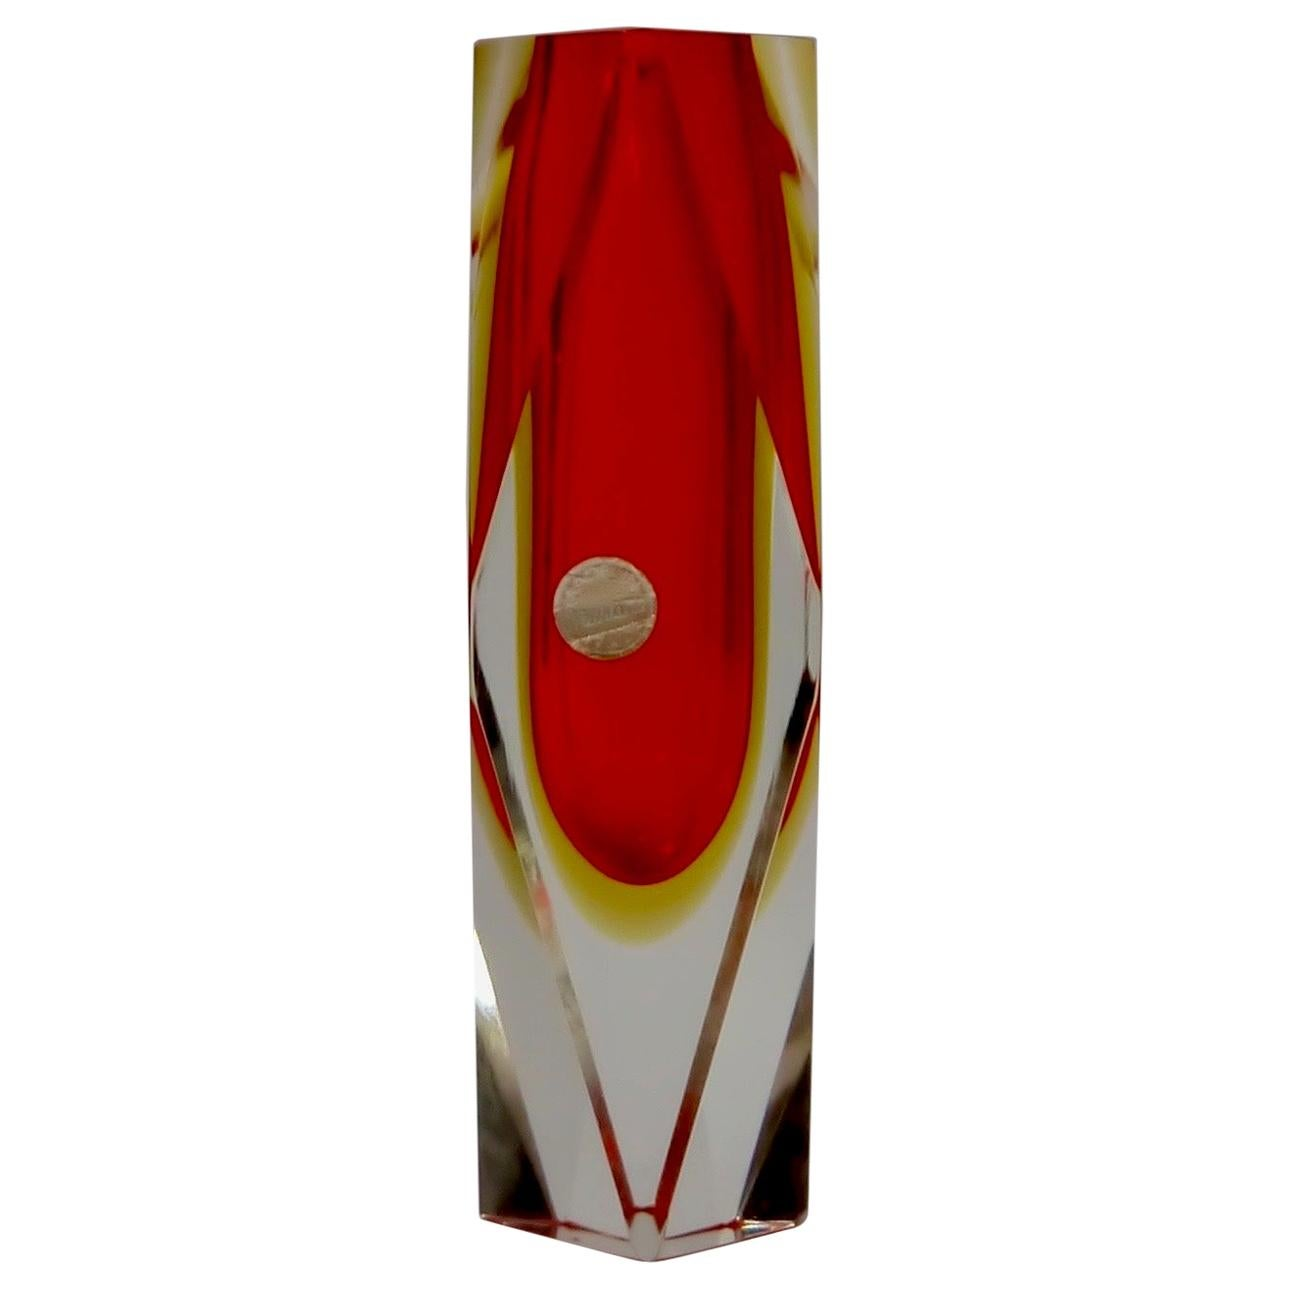 Ruby Red Murano Glass Vase by Mandruzzato for Oball, Italy, 1970s